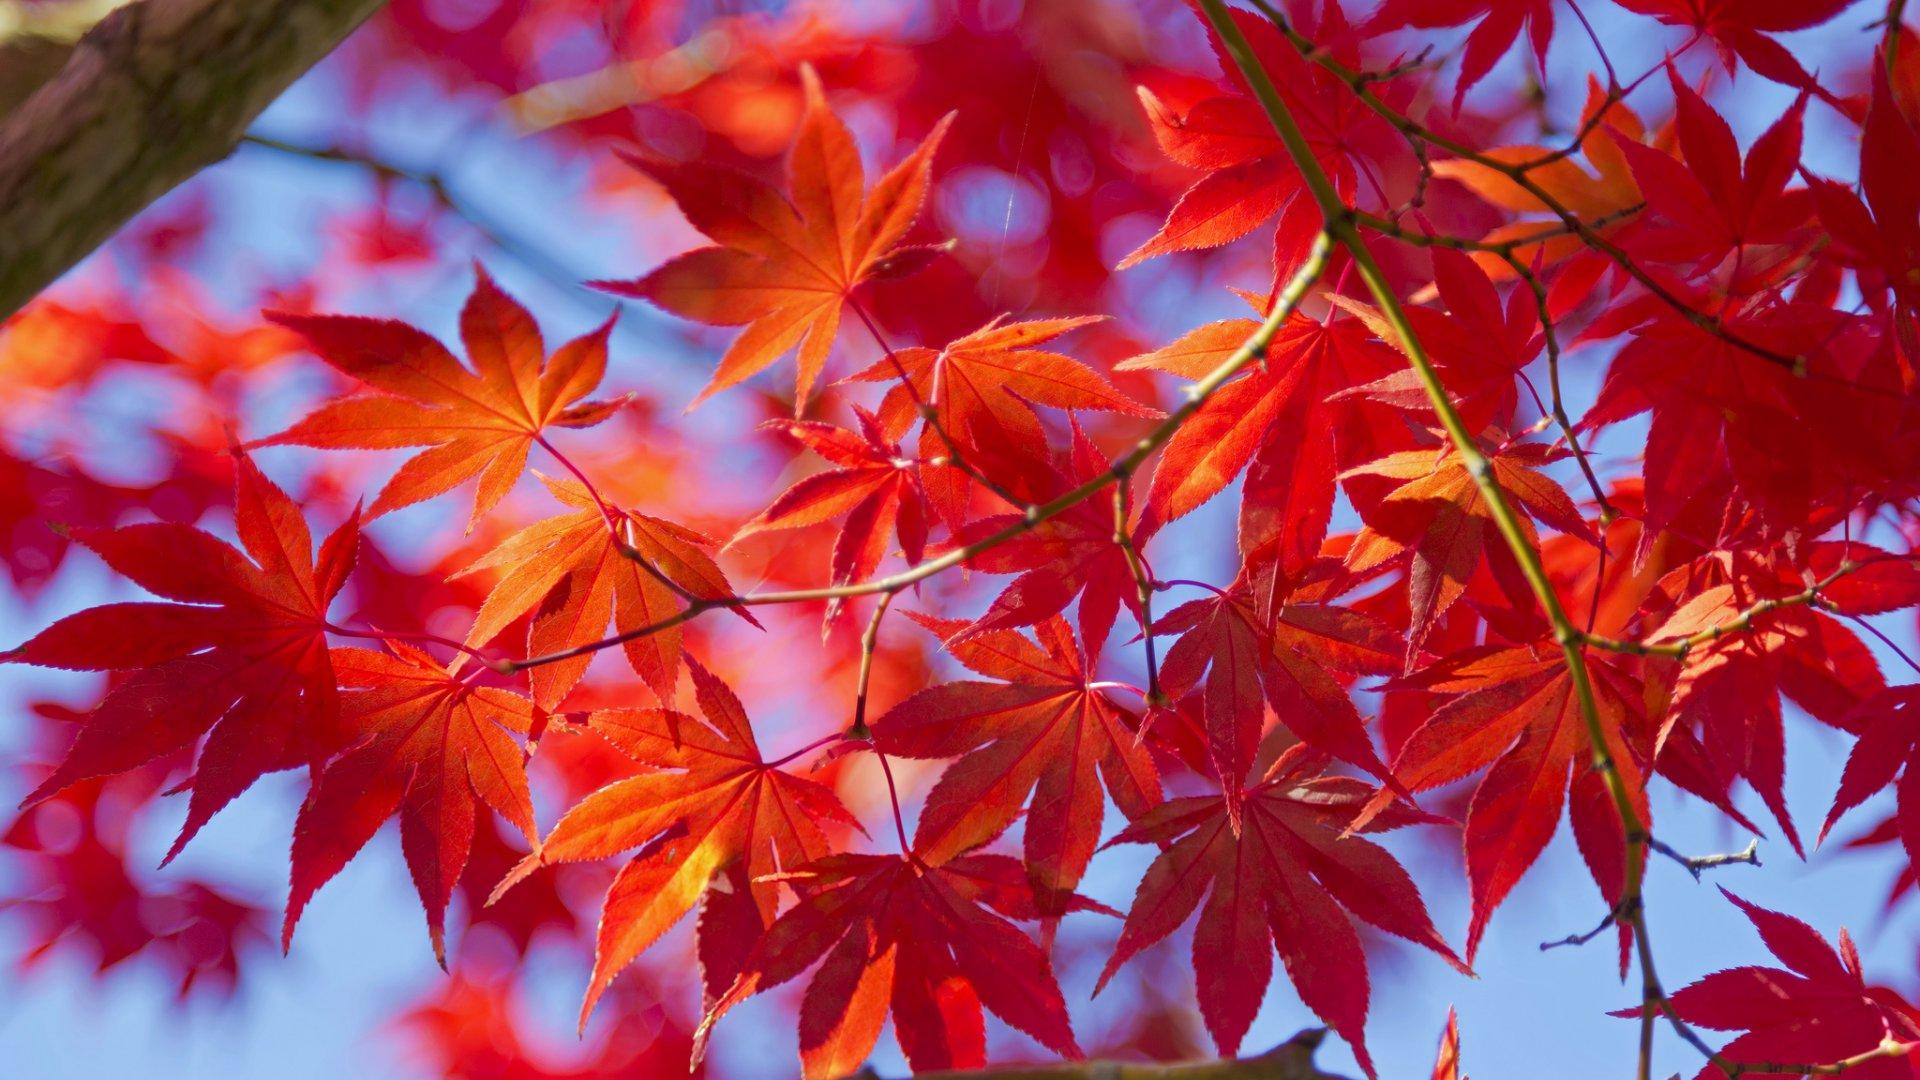 Red Leaves Tree Wallpapers High Quality | Download Free